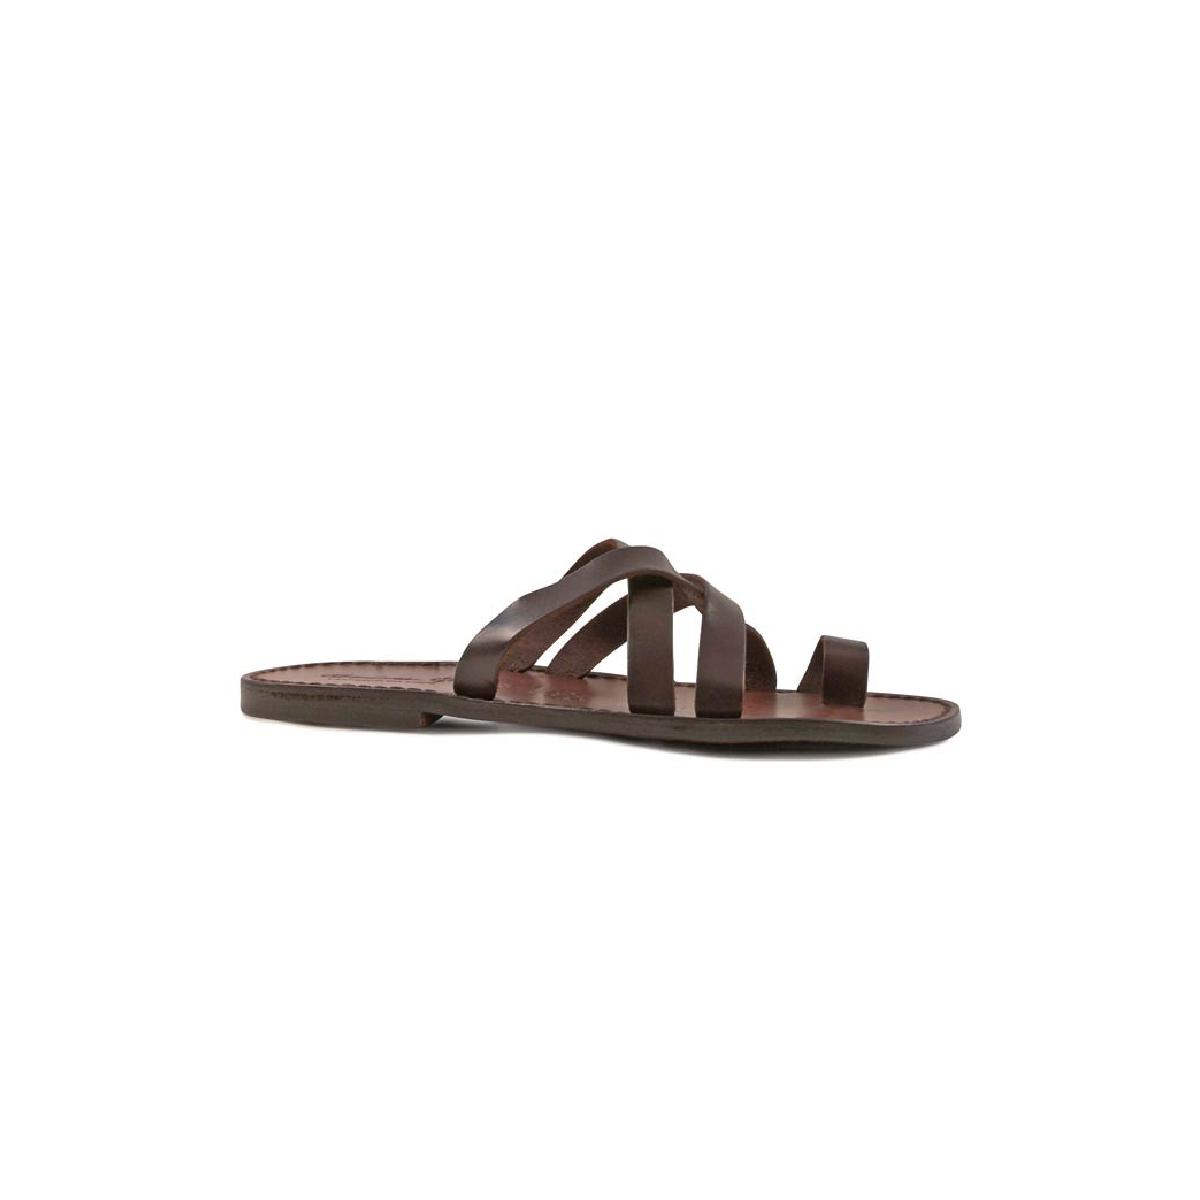 7eeb2e9818f6 Mens brown leather thong sandals handmade in Italy. Loading zoom